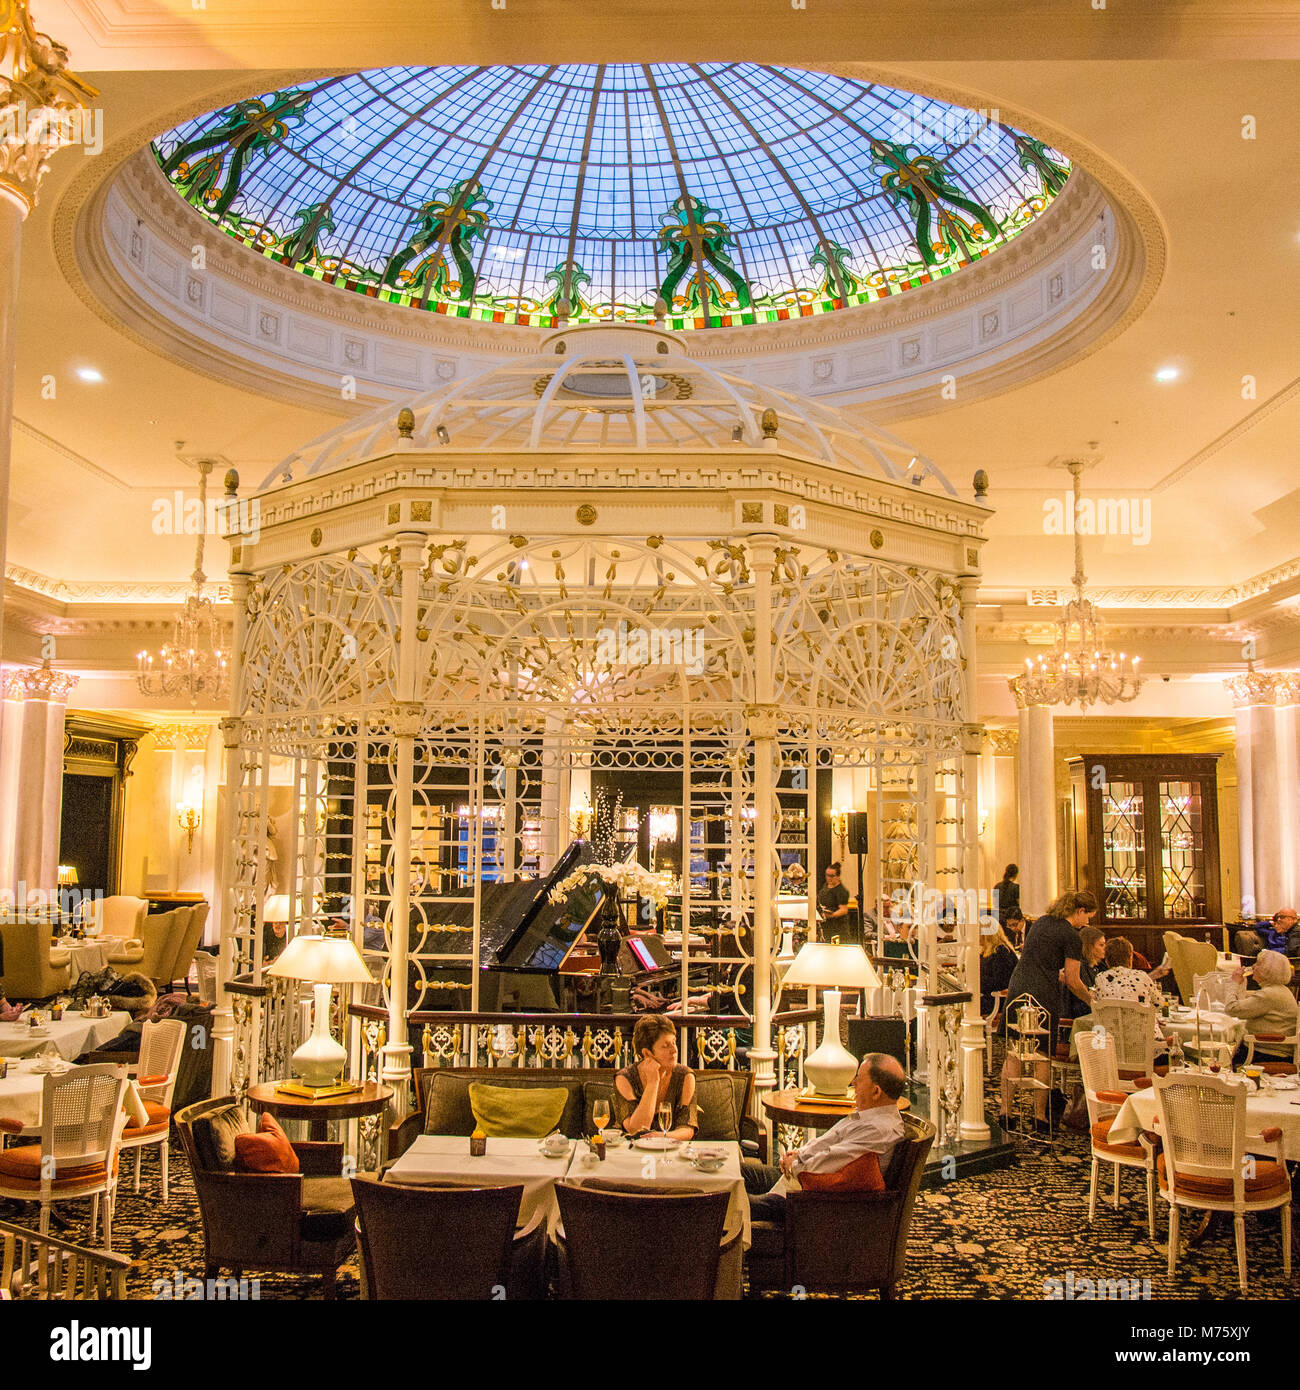 Dining room the Savoy Hotel, a world famous and exclusive hotel situated on the banks of the River Thames, London - Stock Image